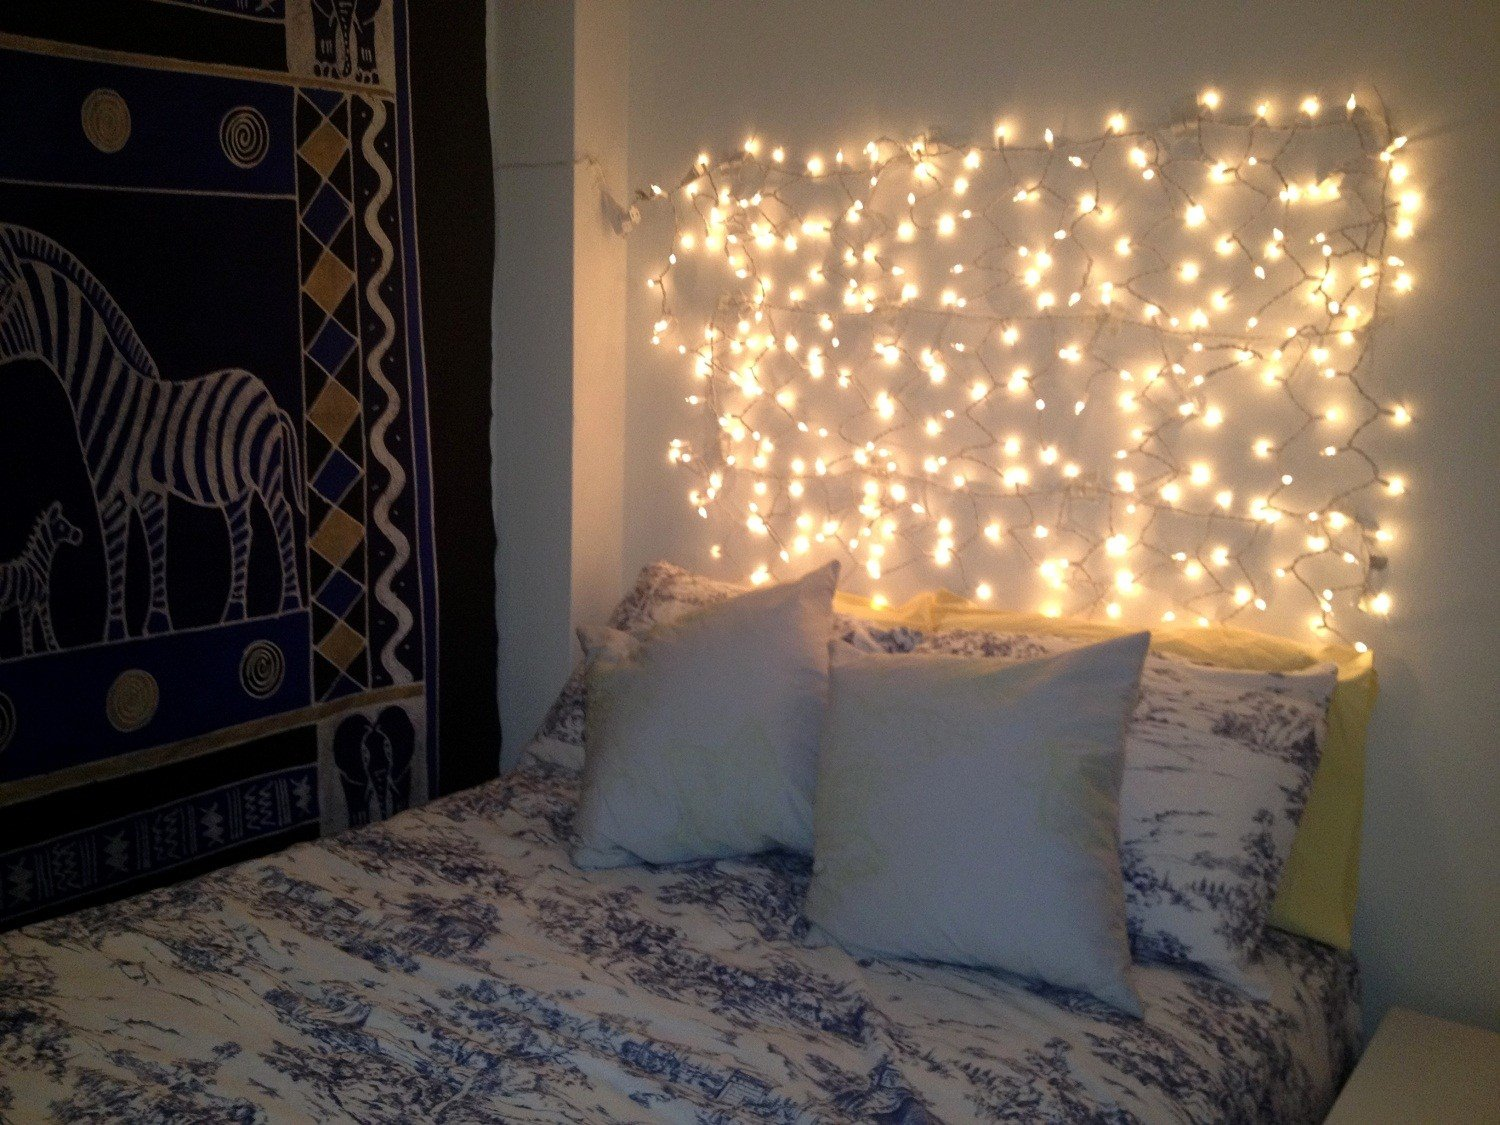 Best Hanging Wall String Twinkle Lights In Bedroom Over With Pictures